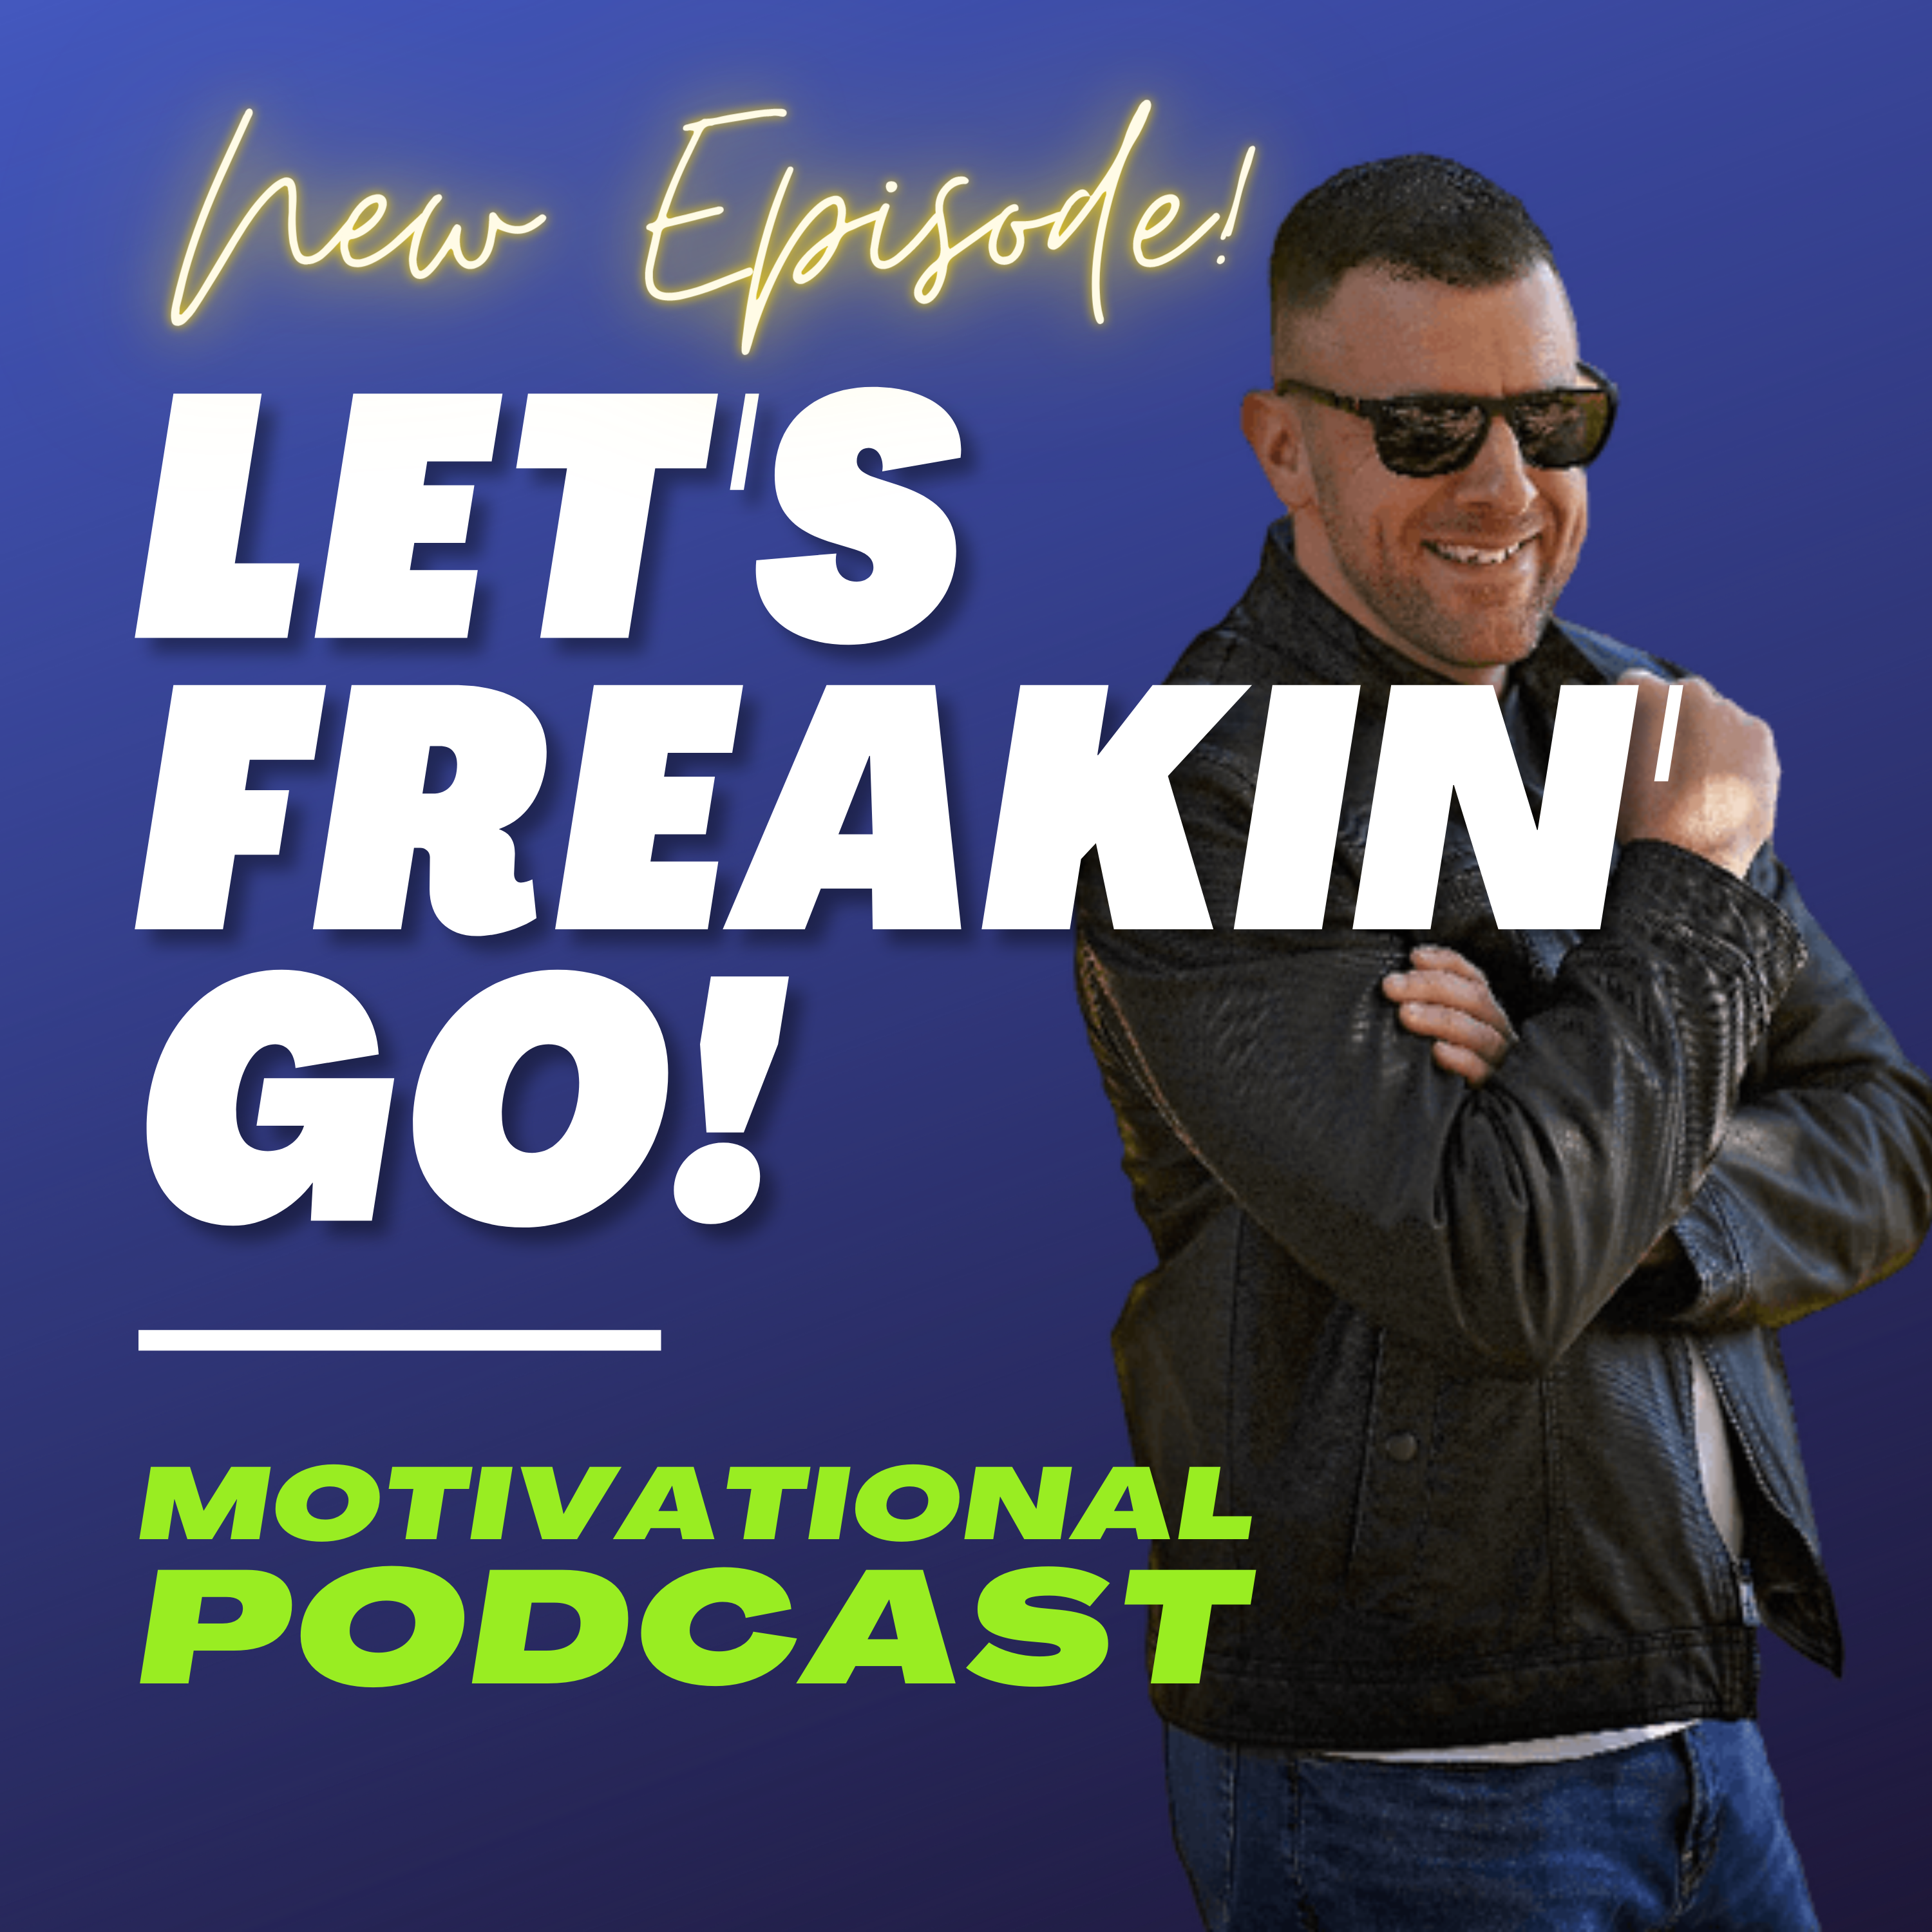 Starting Motivational Podcast Looking For Feedback [Image]